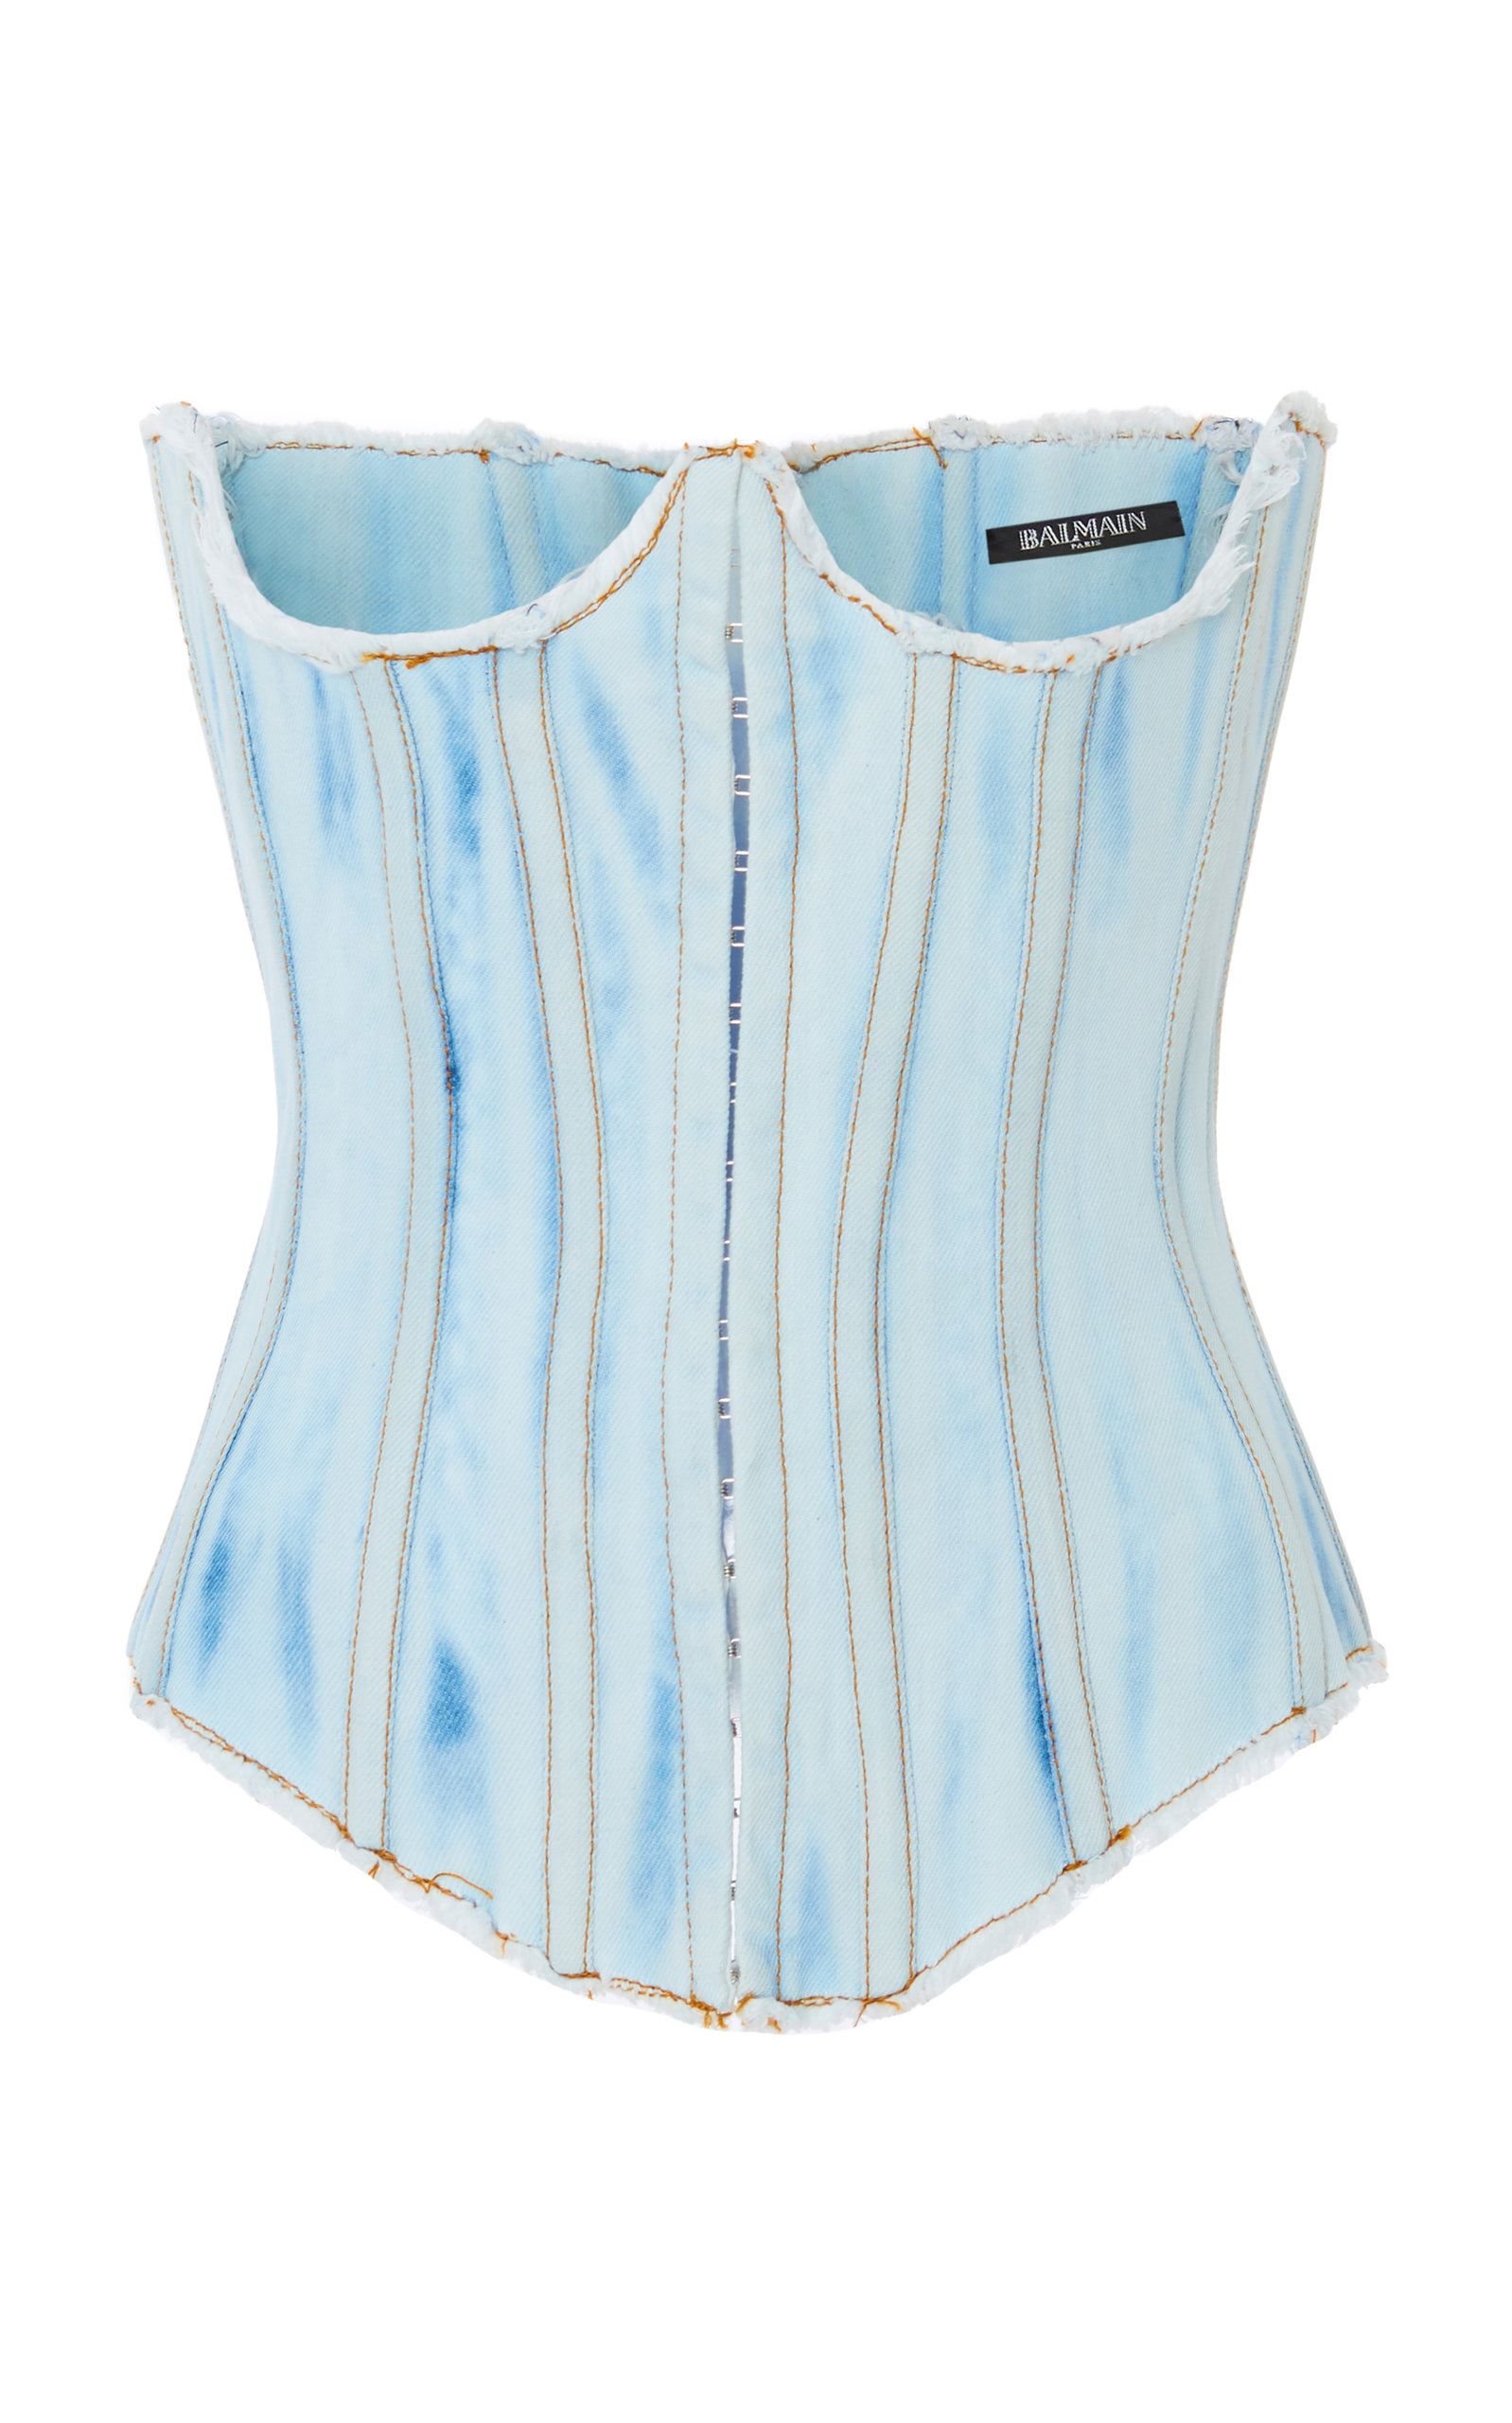 c36434e5db1d8c BalmainBleached Denim Corset Top. CLOSE. Loading